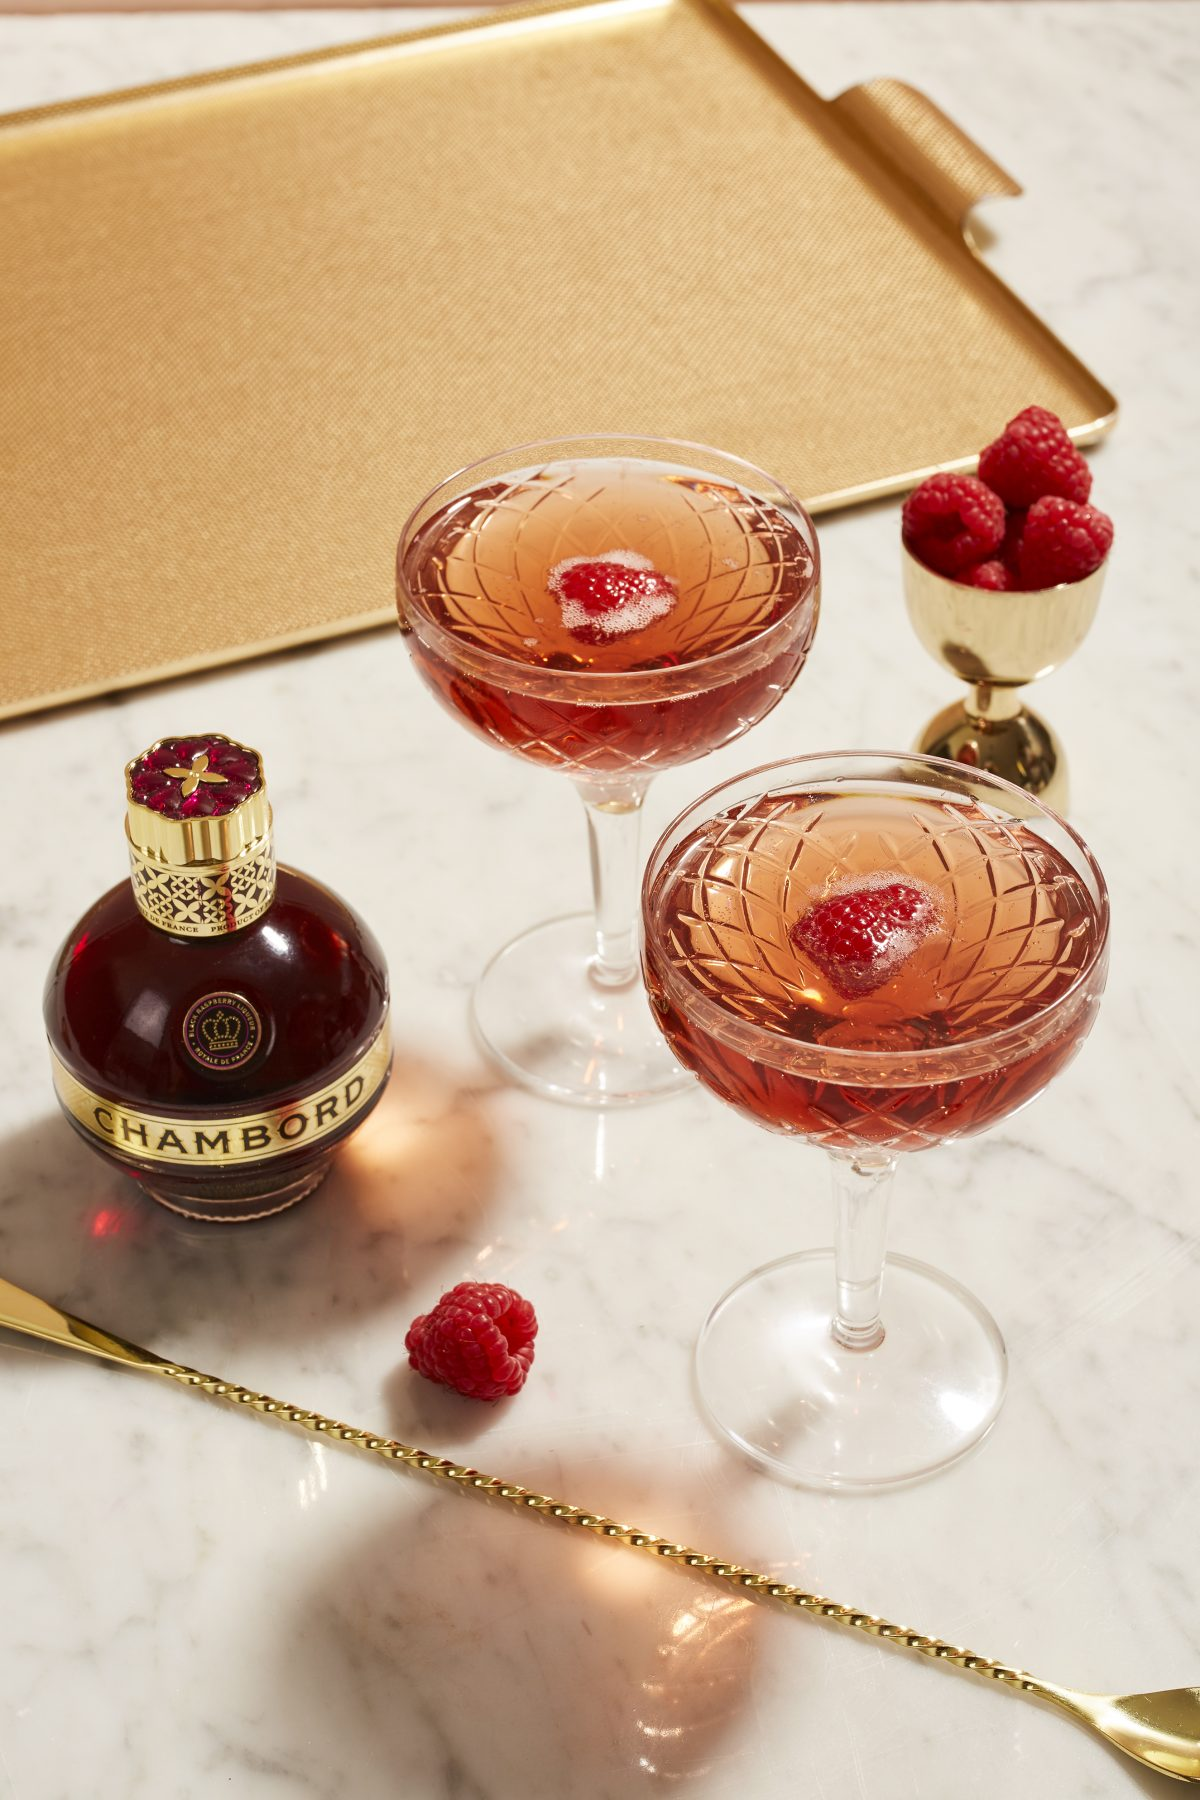 Chambord and cocktails